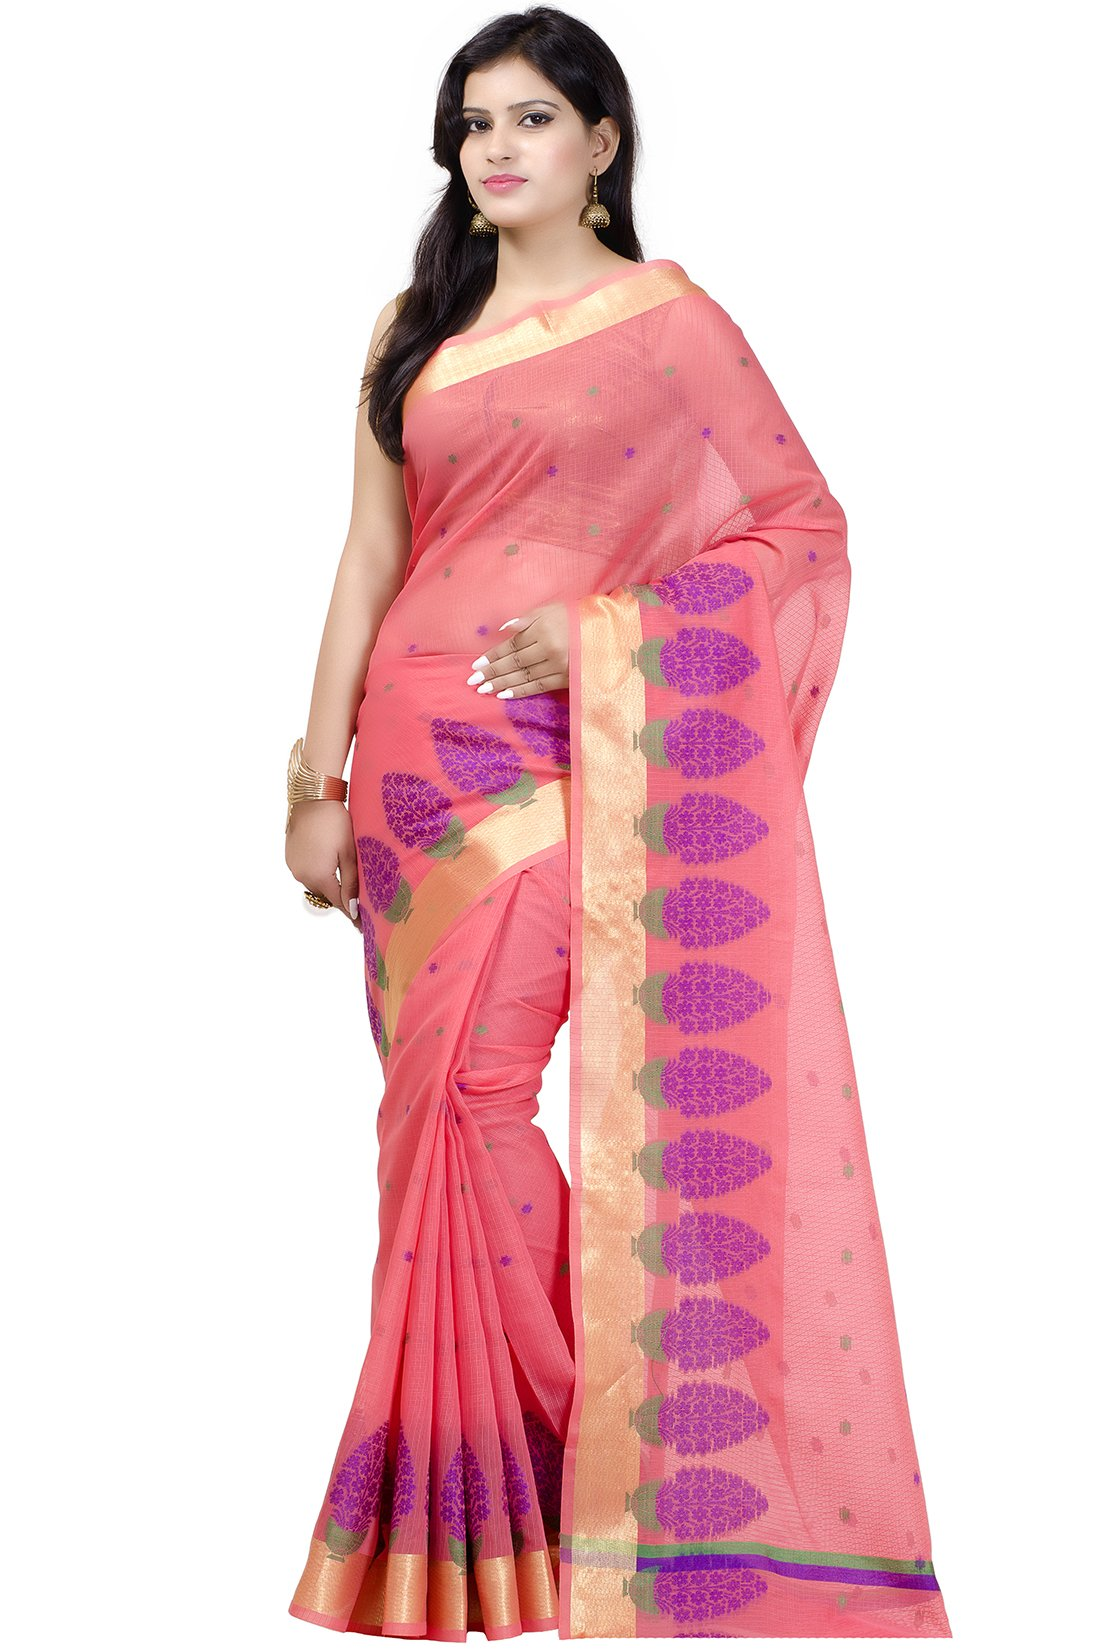 Chandrakala Women's Peach Cotton Blend Banarasi Saree